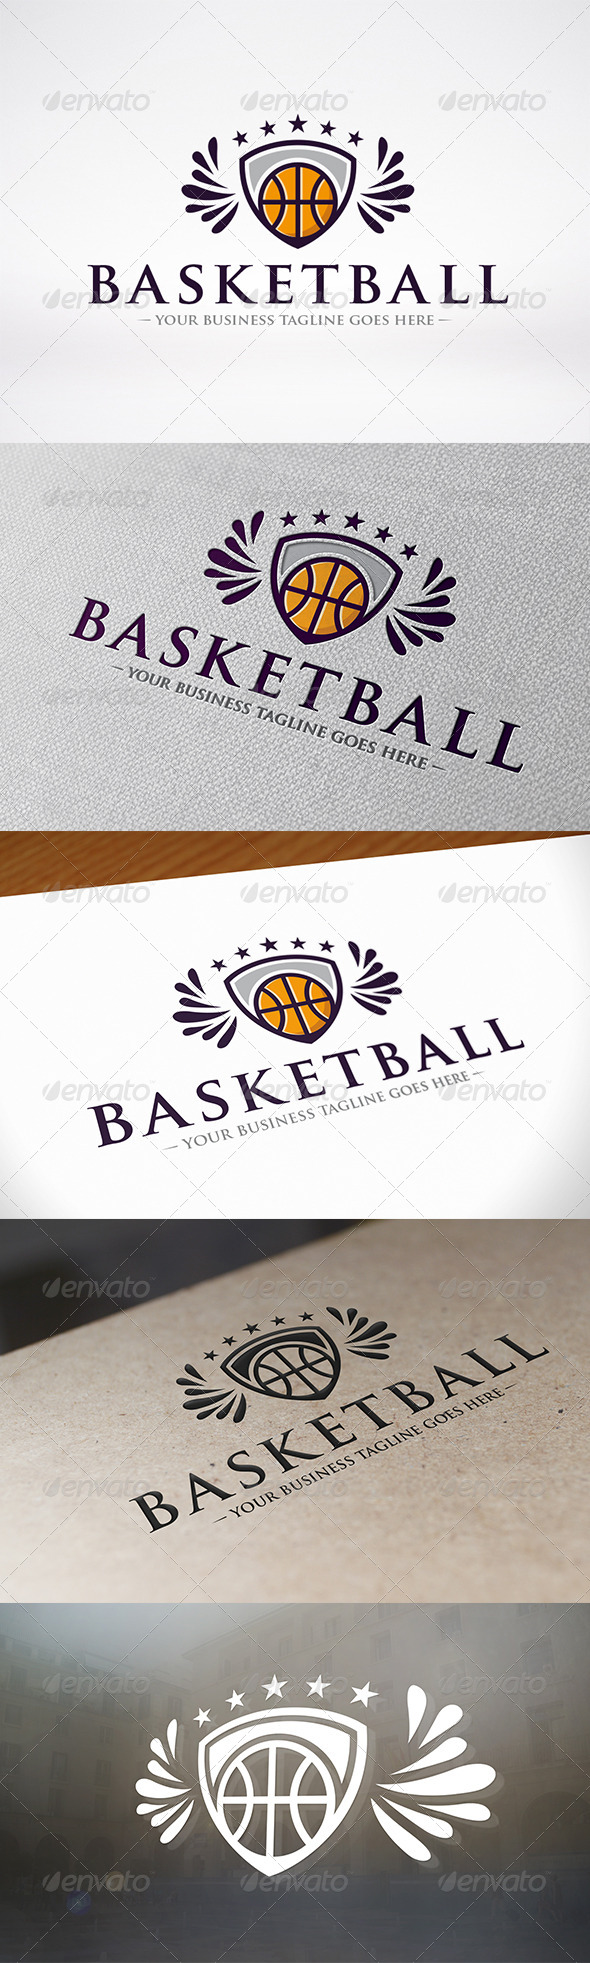 GraphicRiver Basketball Logo Template 6606285